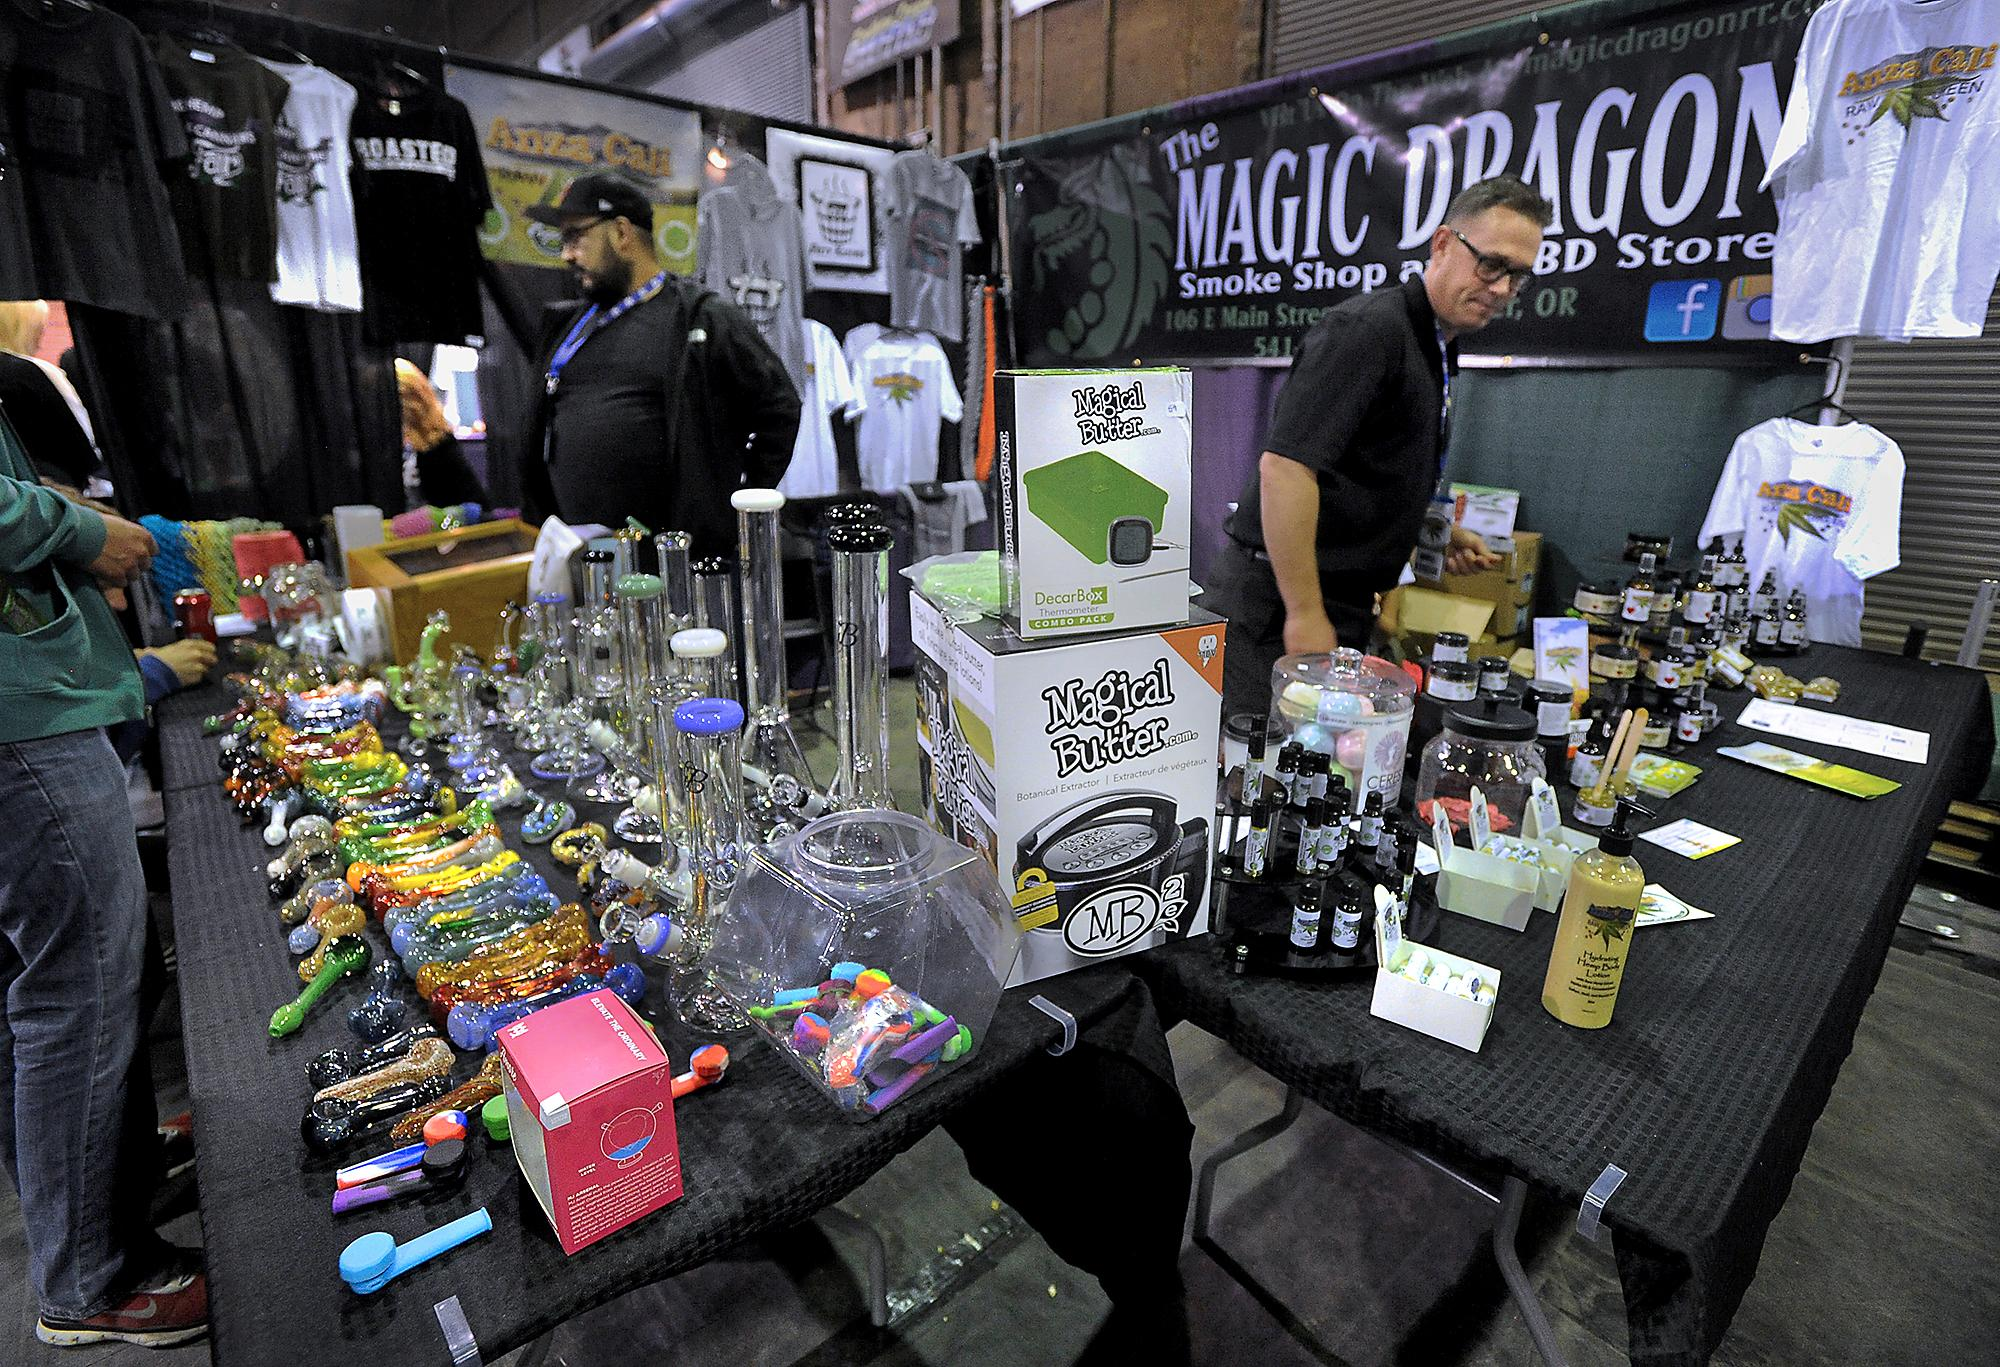 Photo by Denise Baratta <br><p>Merchants from the Magic Dragon in Rogue River sell smoking accessories on the left and CBD health and beauty products on the right Saturday during The Hemp and Cannabis Fair at the Expo in Central Point.</p>